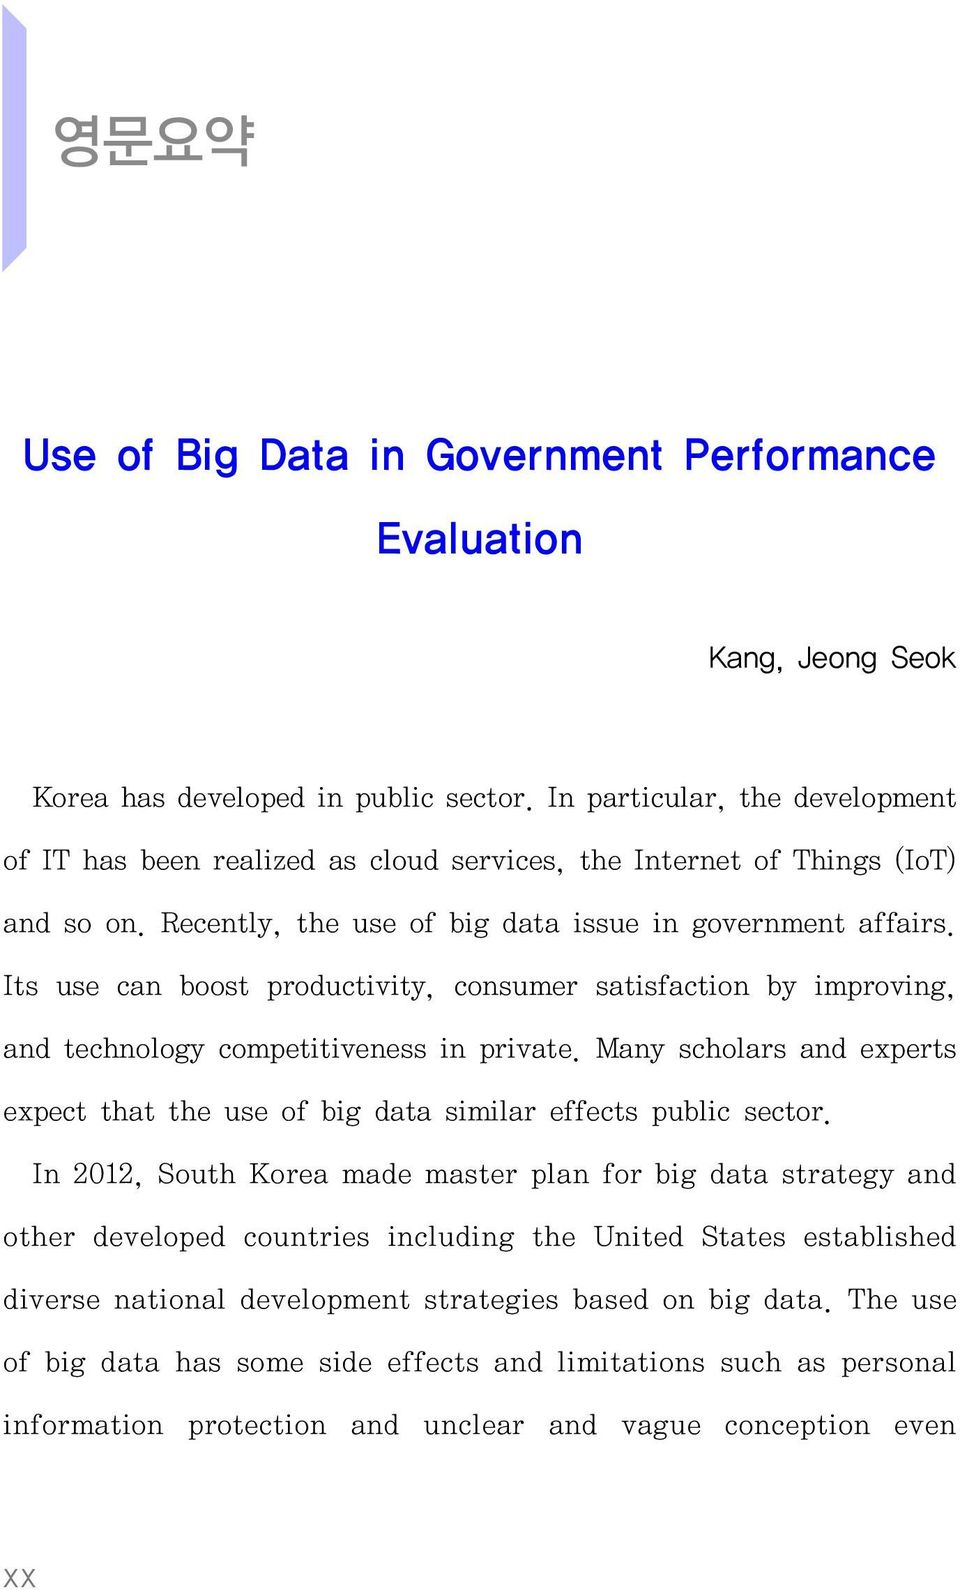 Its use can boost productivity, consumer satisfaction by improving, and technology competitiveness in private. Many scholars and experts expect that the use of big data similar effects public sector.